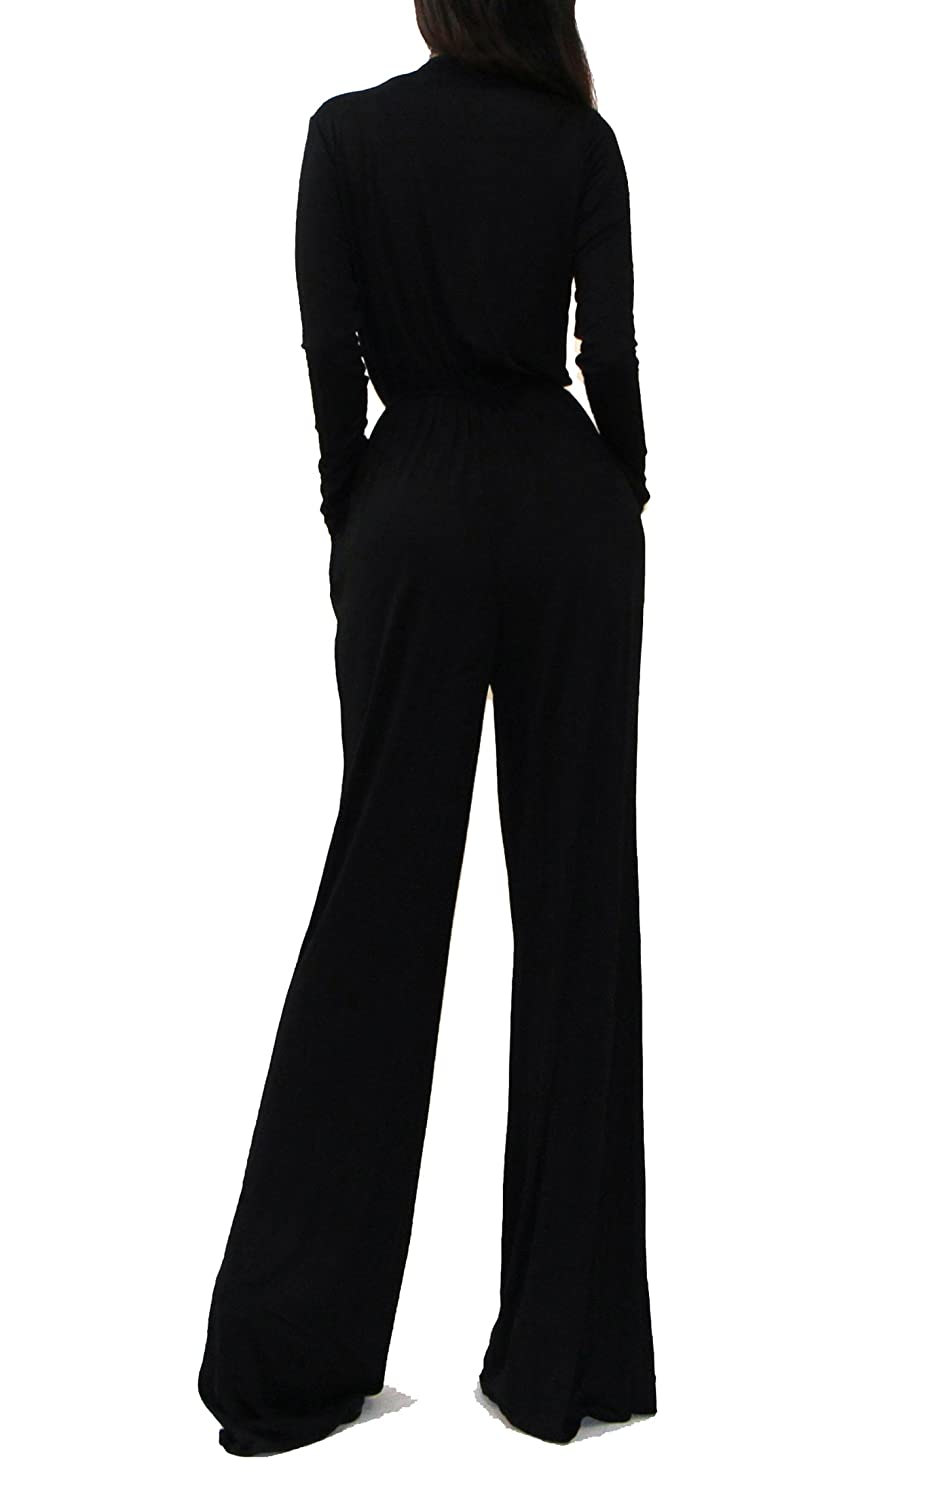 6122a14bd98 Amazon.com  Vivicastle Women s USA Sexy Wrap Top Wide Leg Long Sleeve  Cocktail Knit Jumpsuit  Clothing